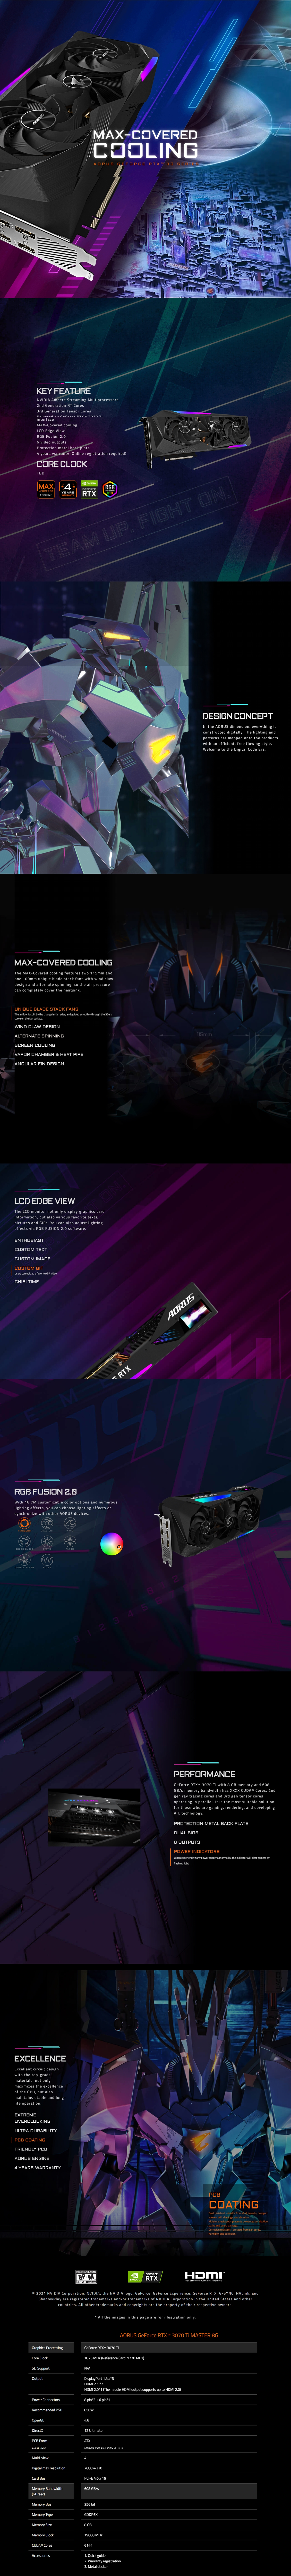 A large marketing image providing additional information about the product Gigabyte GeForce RTX 3070 Ti Aorus MASTER 8GB GDDR6X - Additional alt info not provided